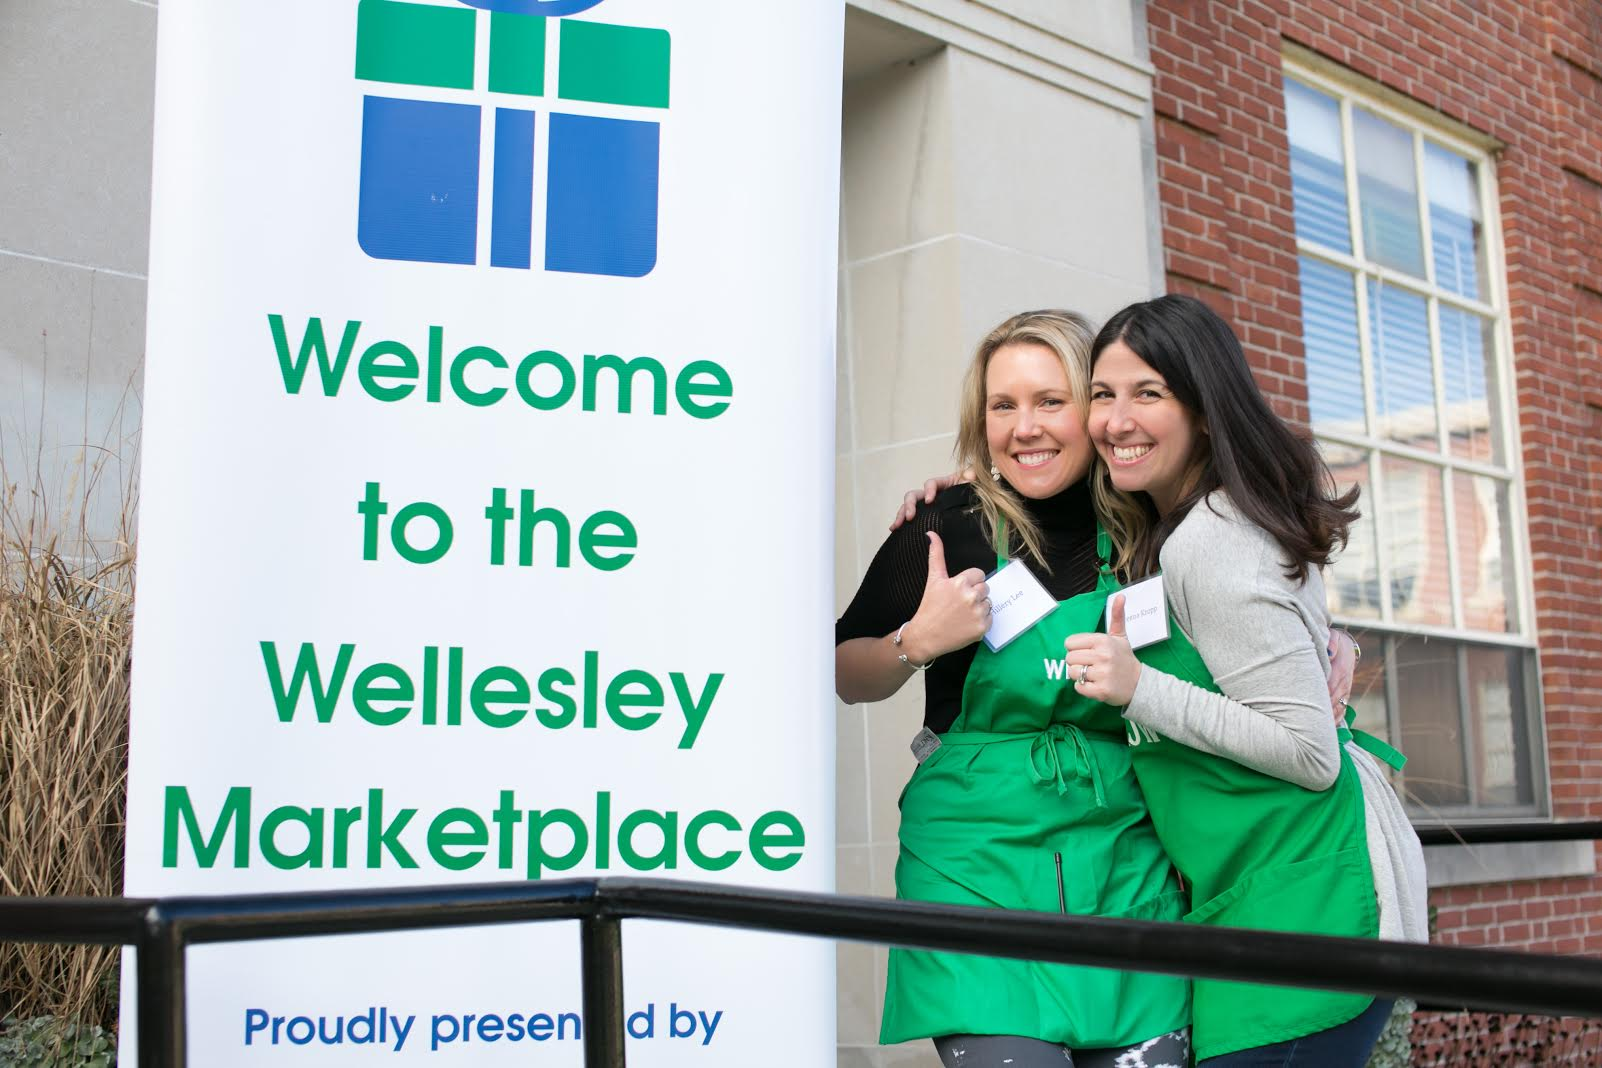 Wellesley Marketplace, 2016